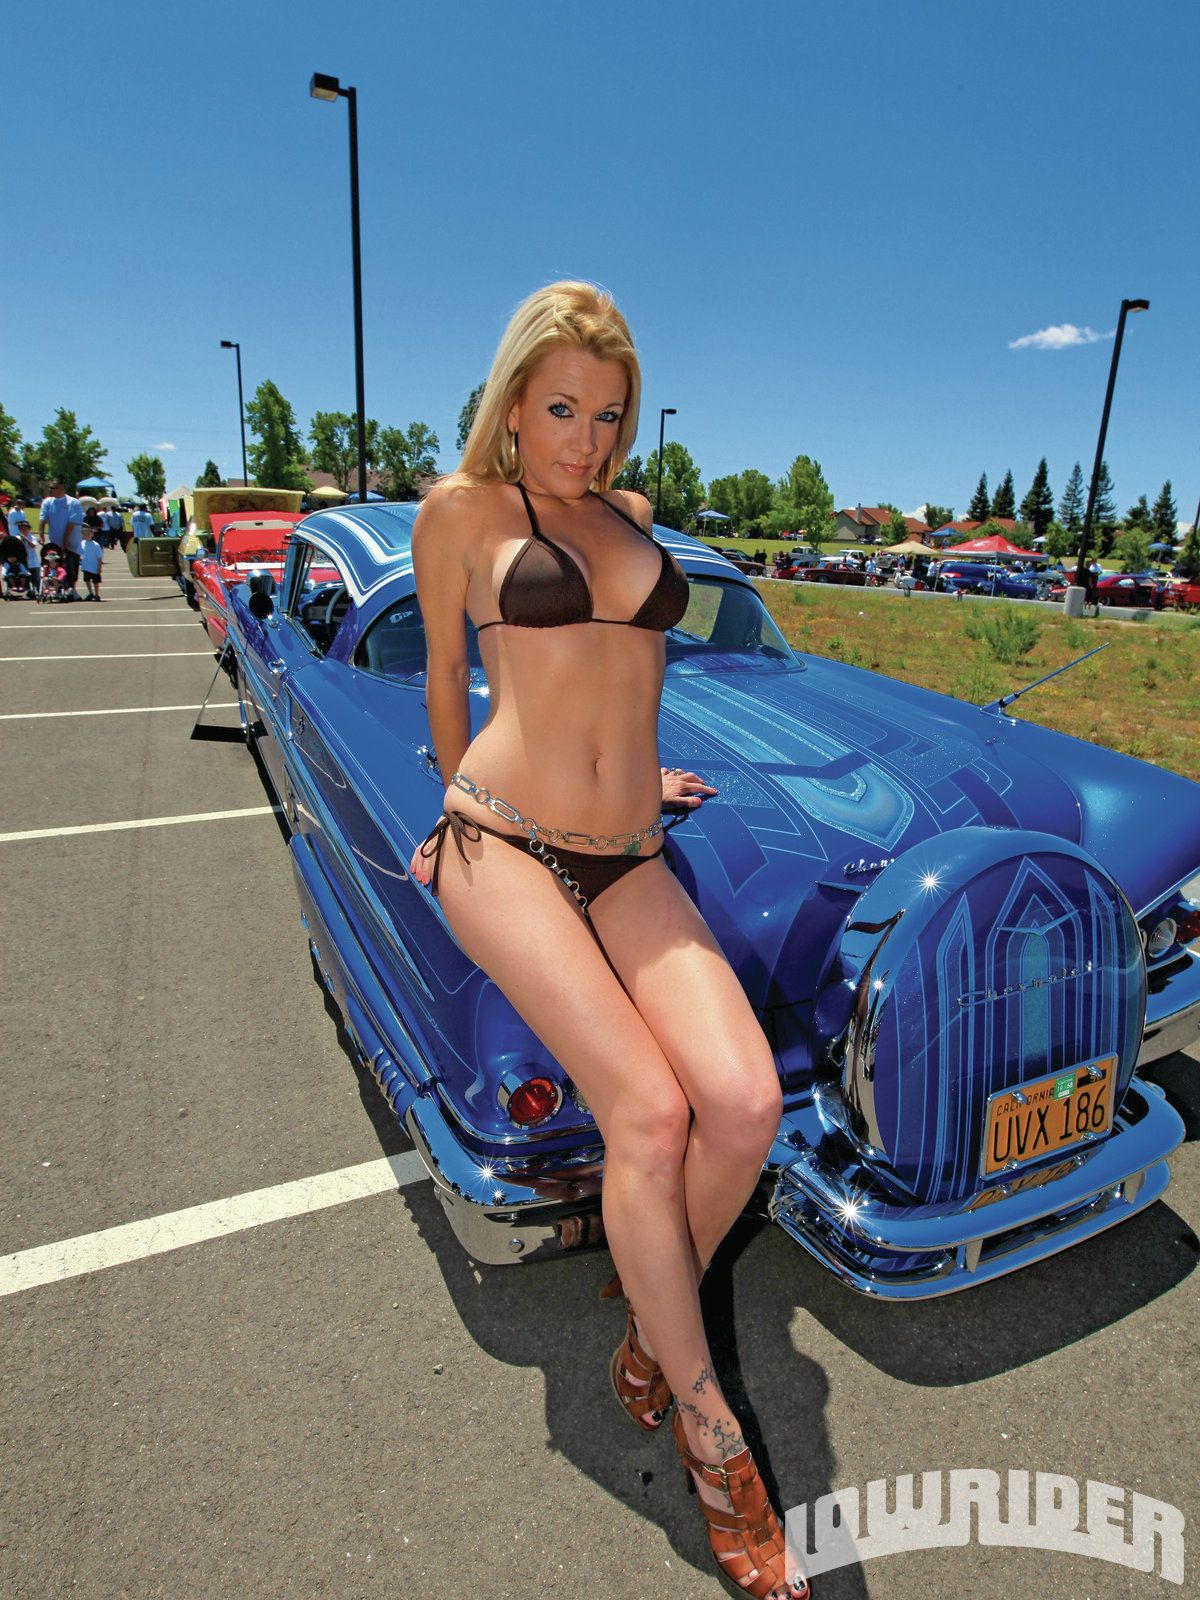 Old Classic El Camino Muscle Cars Wallpaper Lowrider Girls And Motorcycles Socios 9th Annual Car